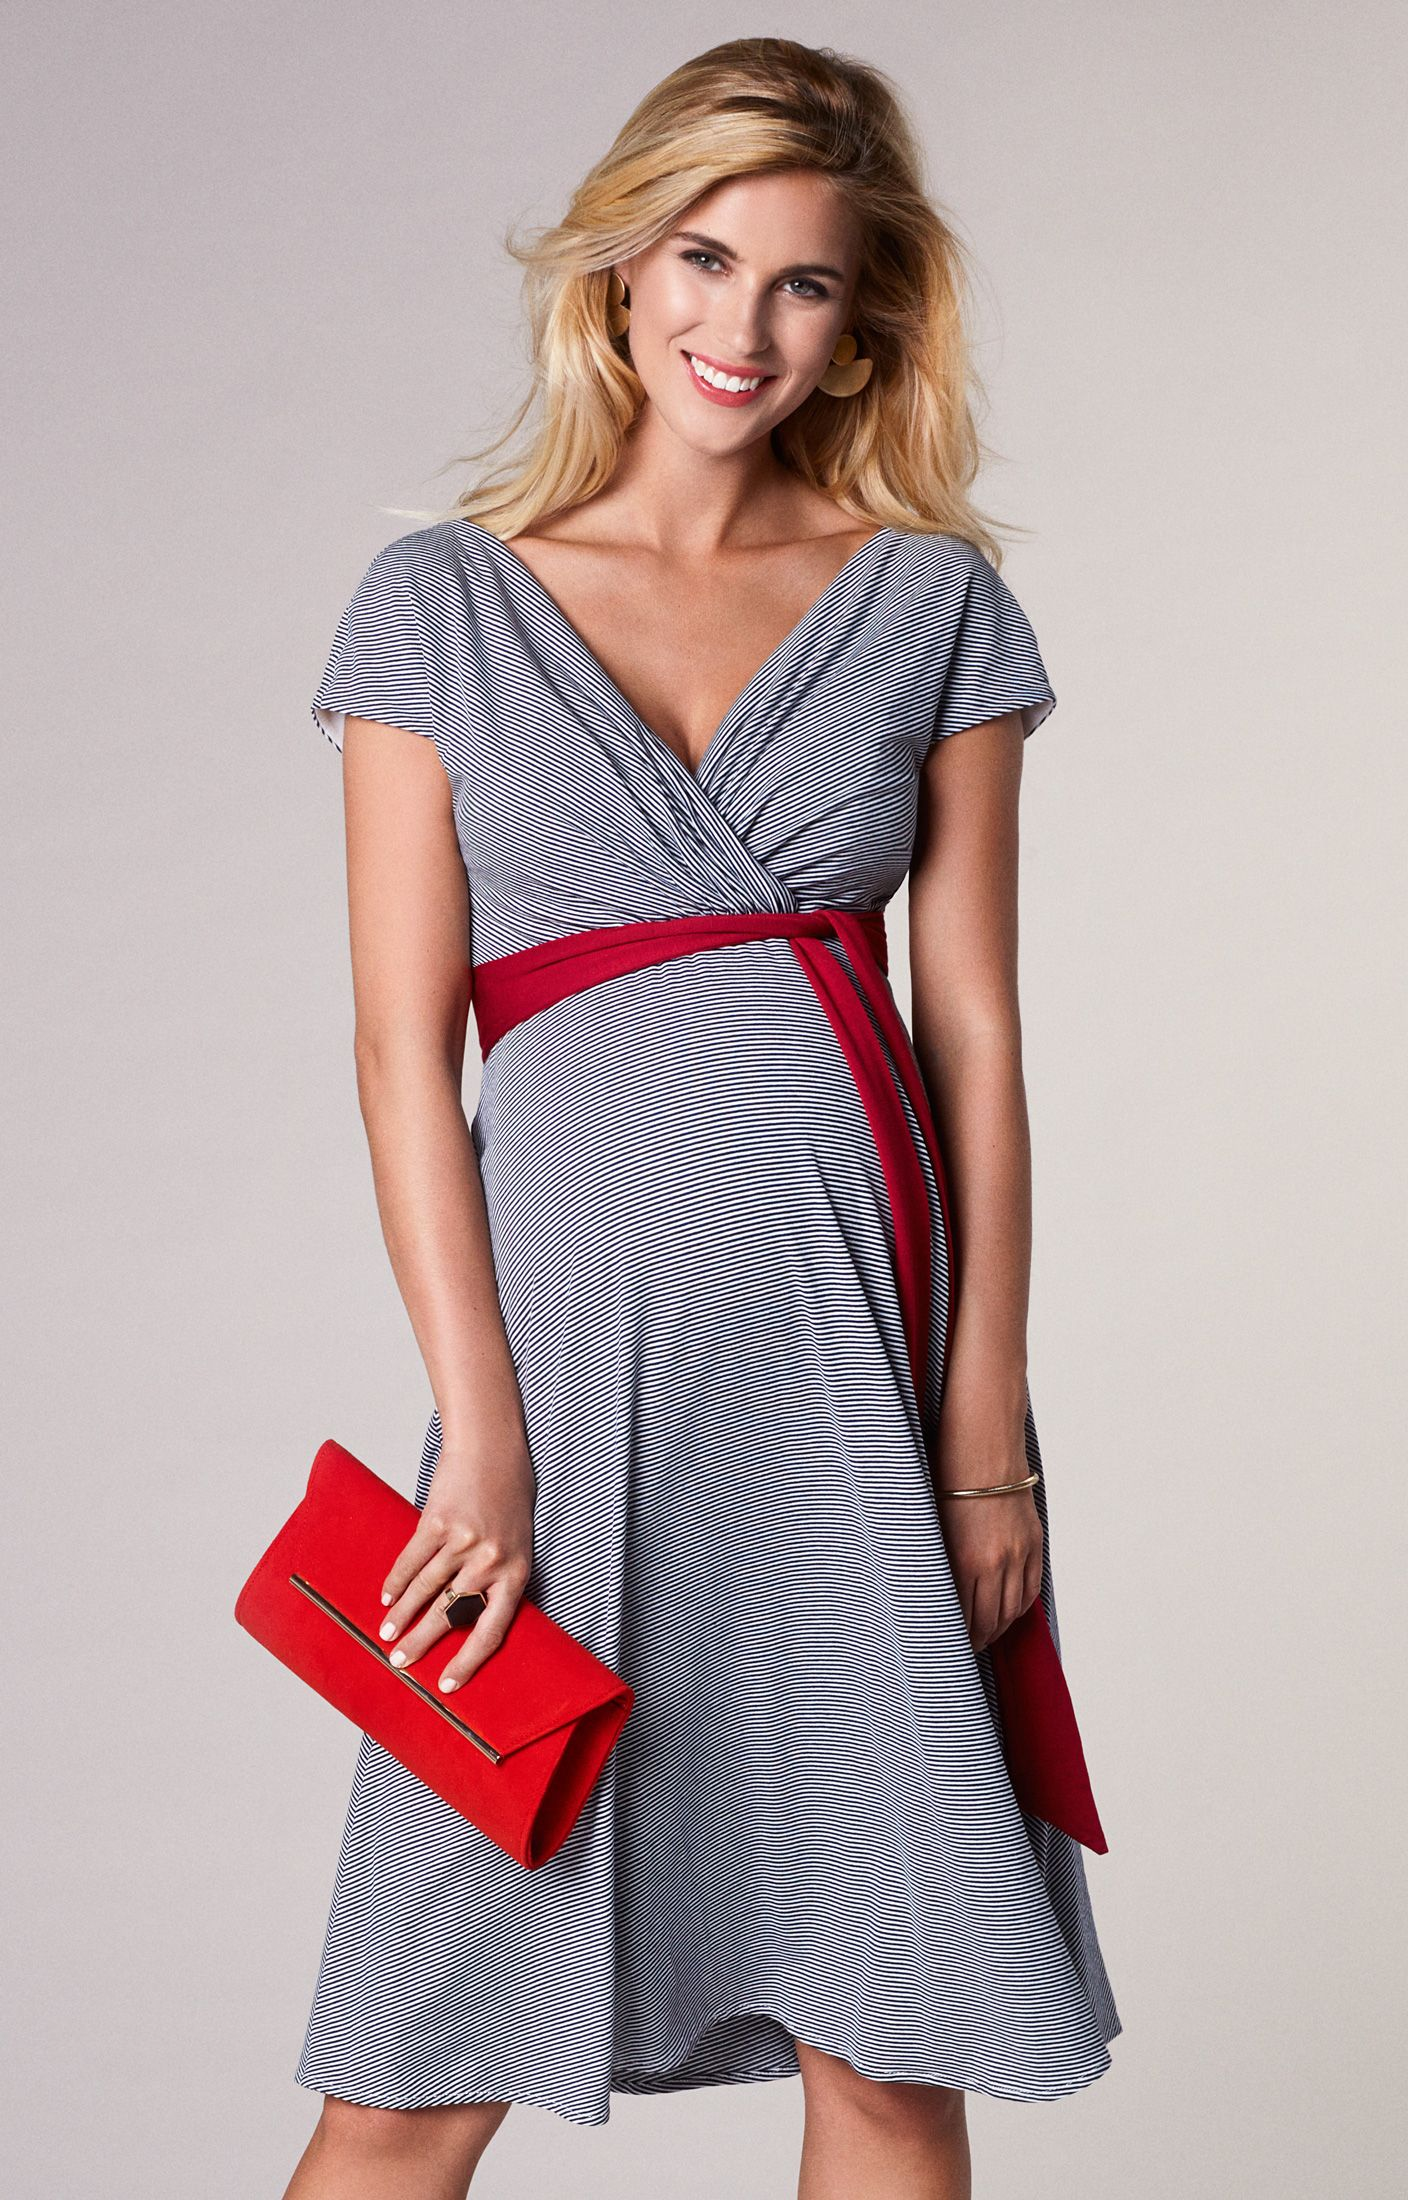 029cf0f1e5c With the same navy and white nautical stripes of our Alana maxi maternity  dress but in a classic knee length version